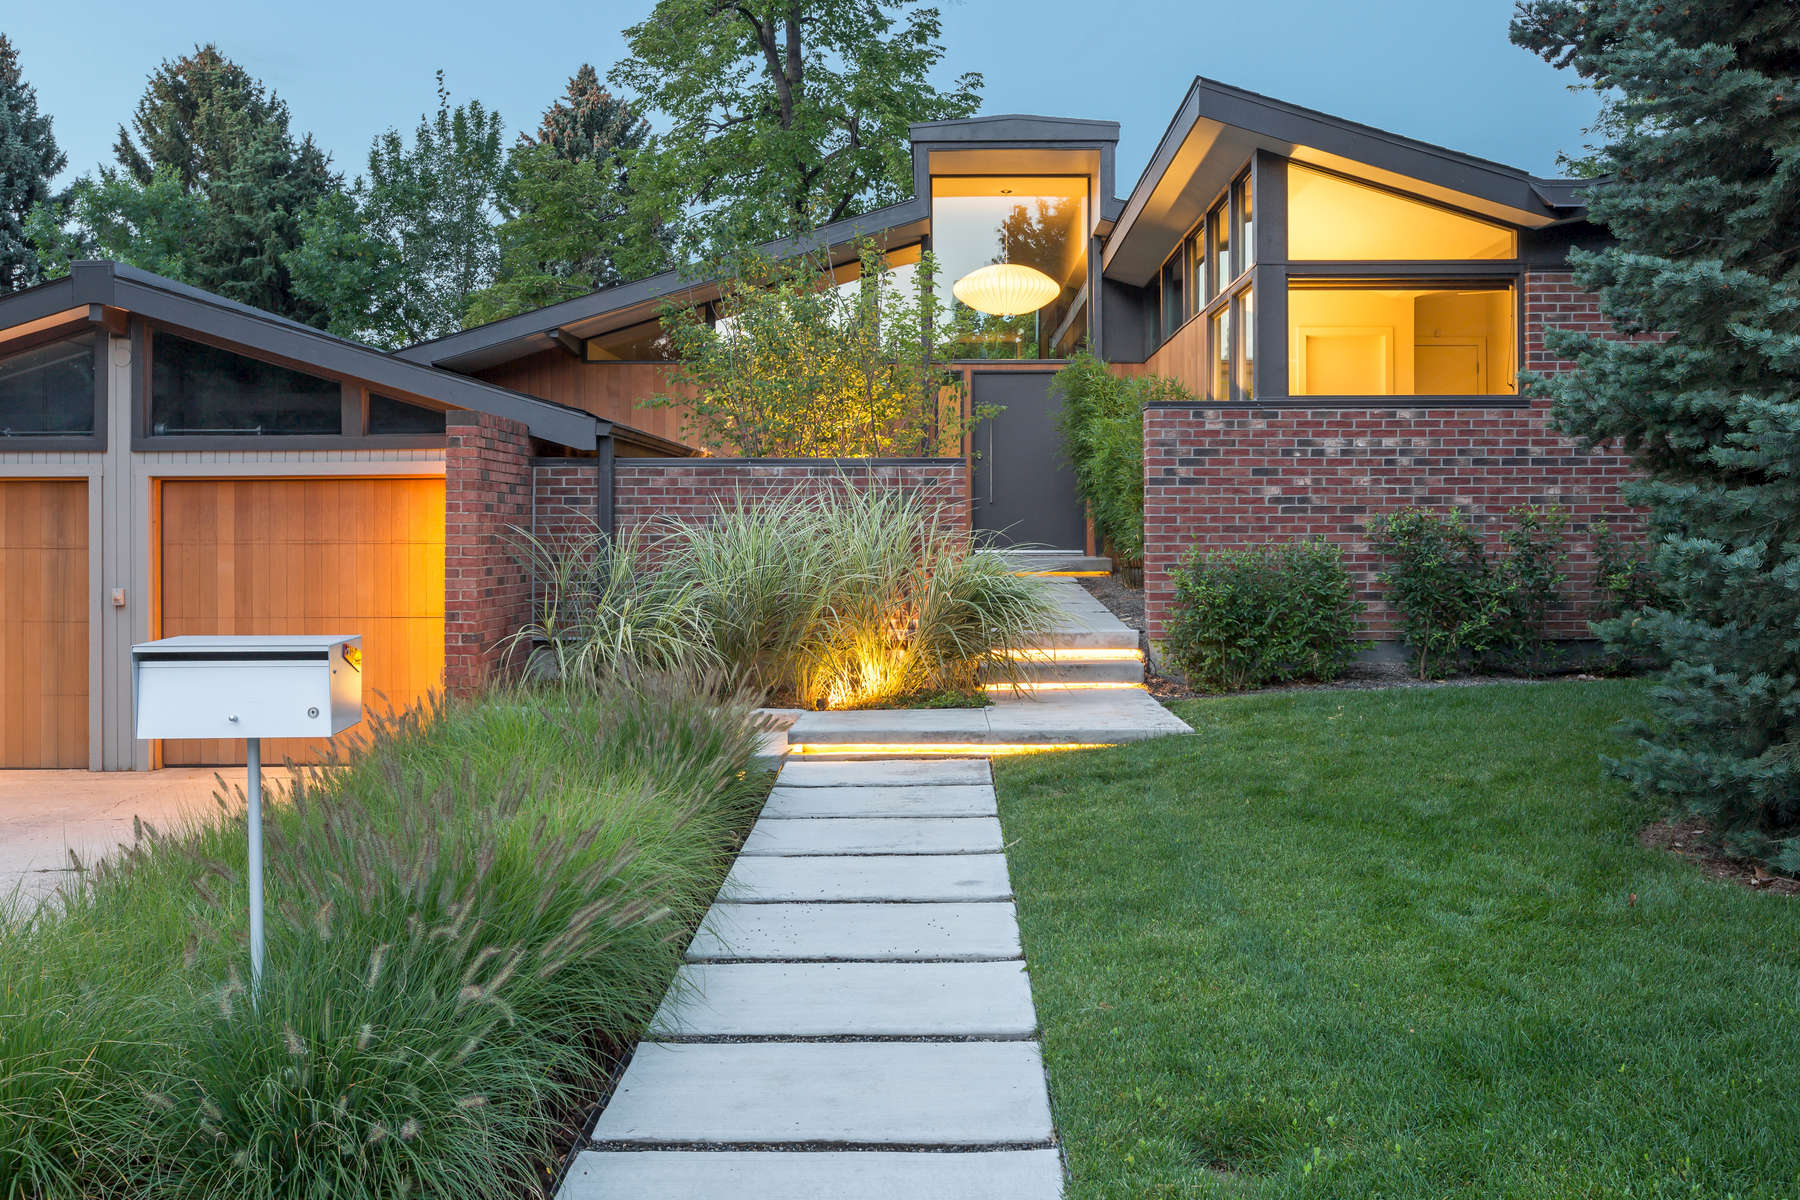 109 mid century modern residential projects projects r for Mid century modern homes denver